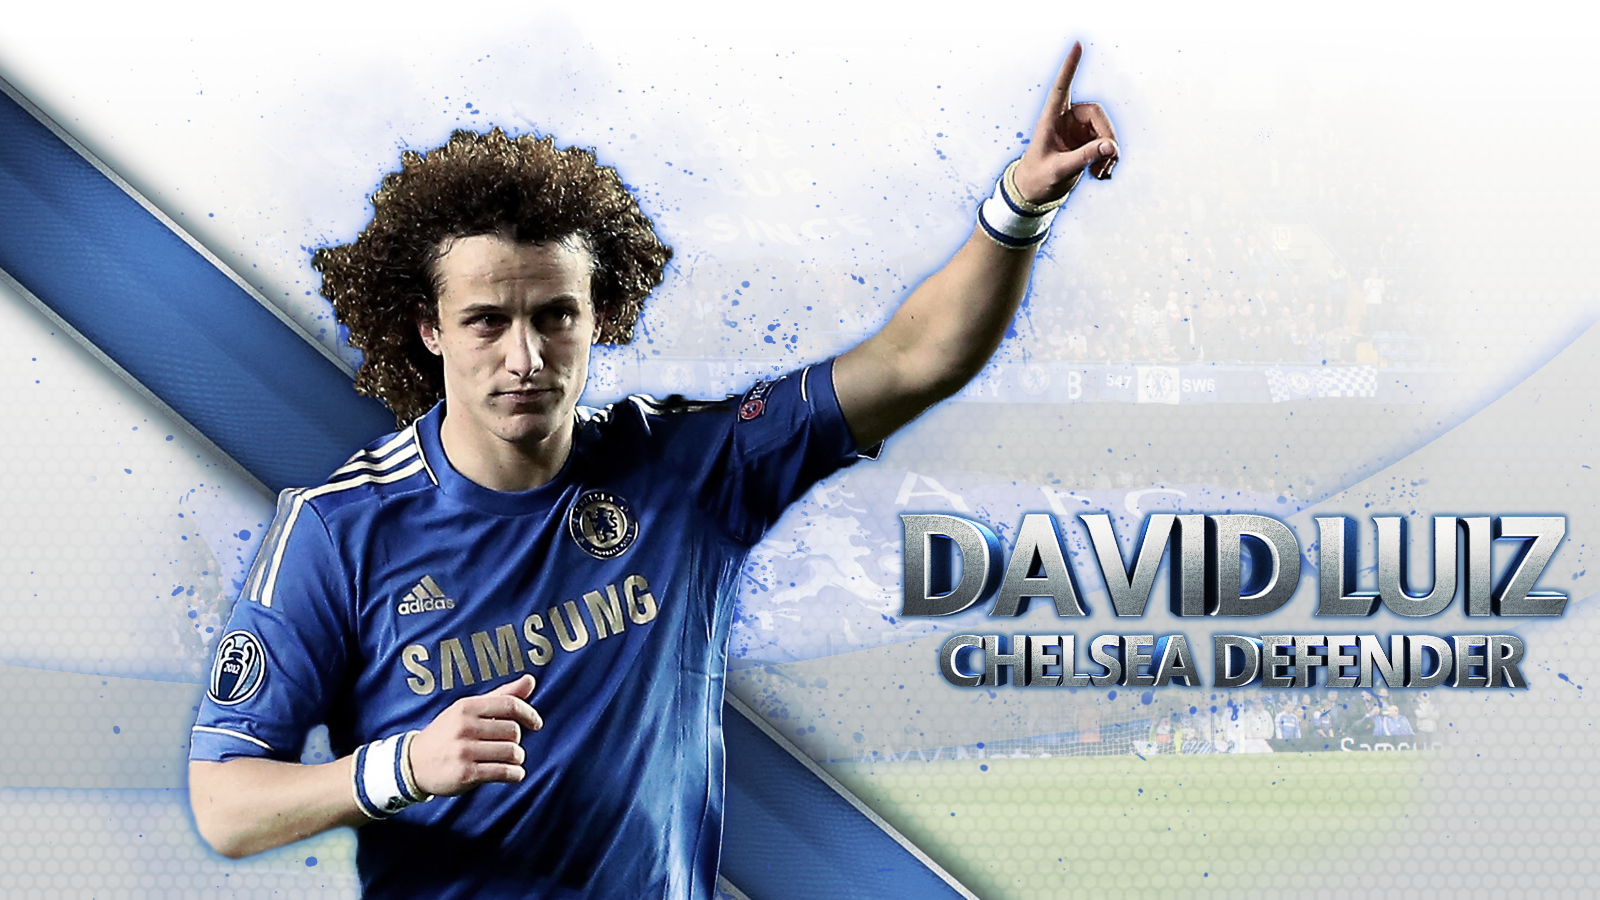 David Luiz Wallpaper By DiaToX On DeviantArt